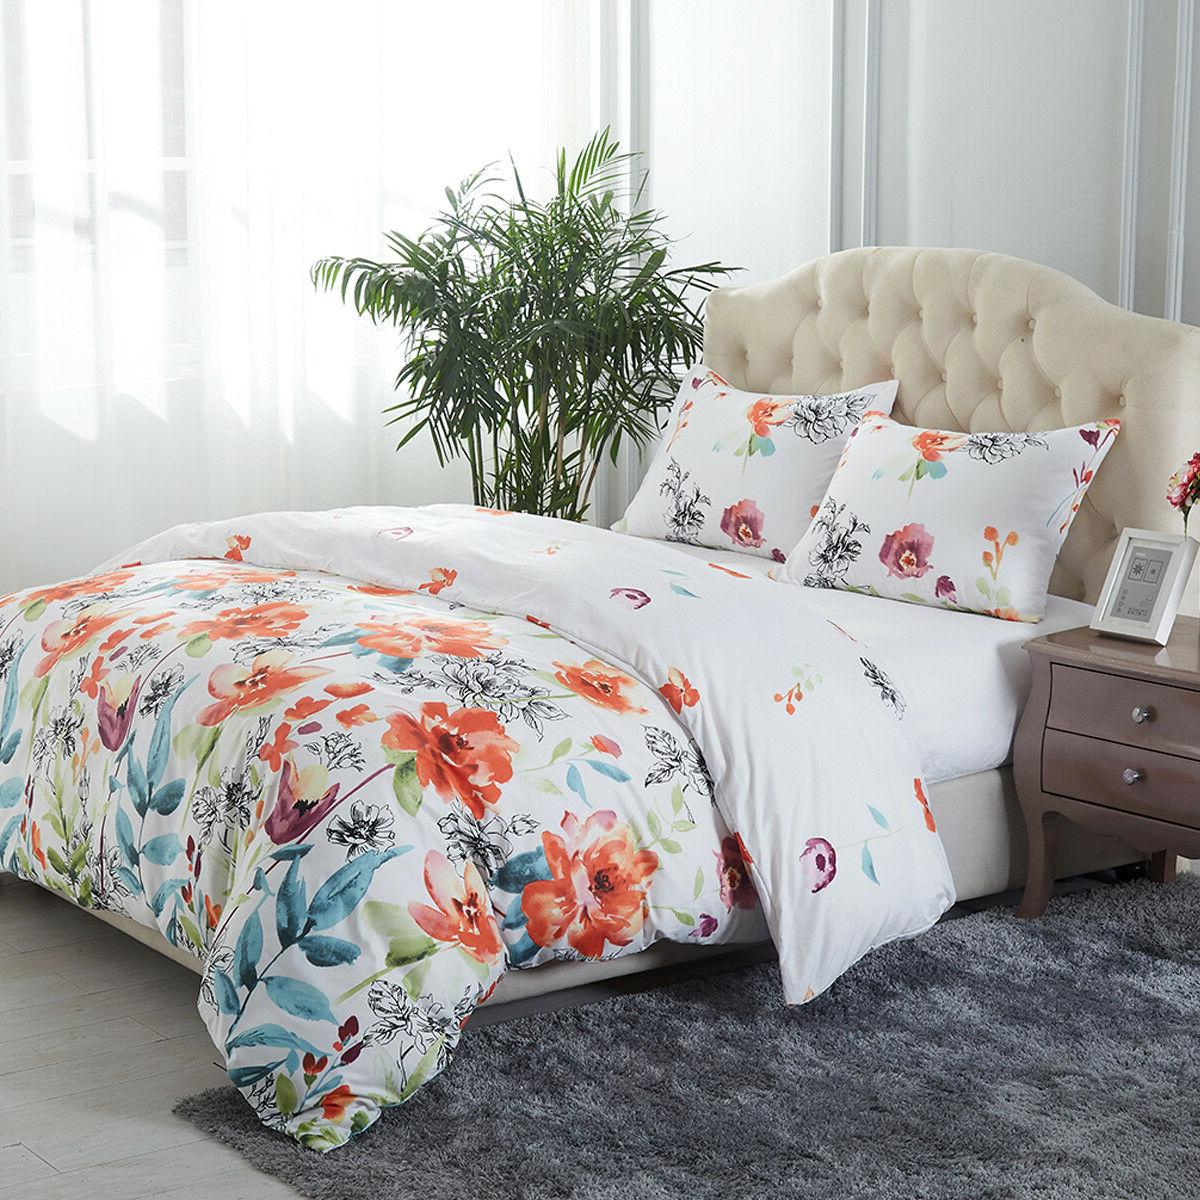 3 Piece Cover Comforter Cover Bedding Set